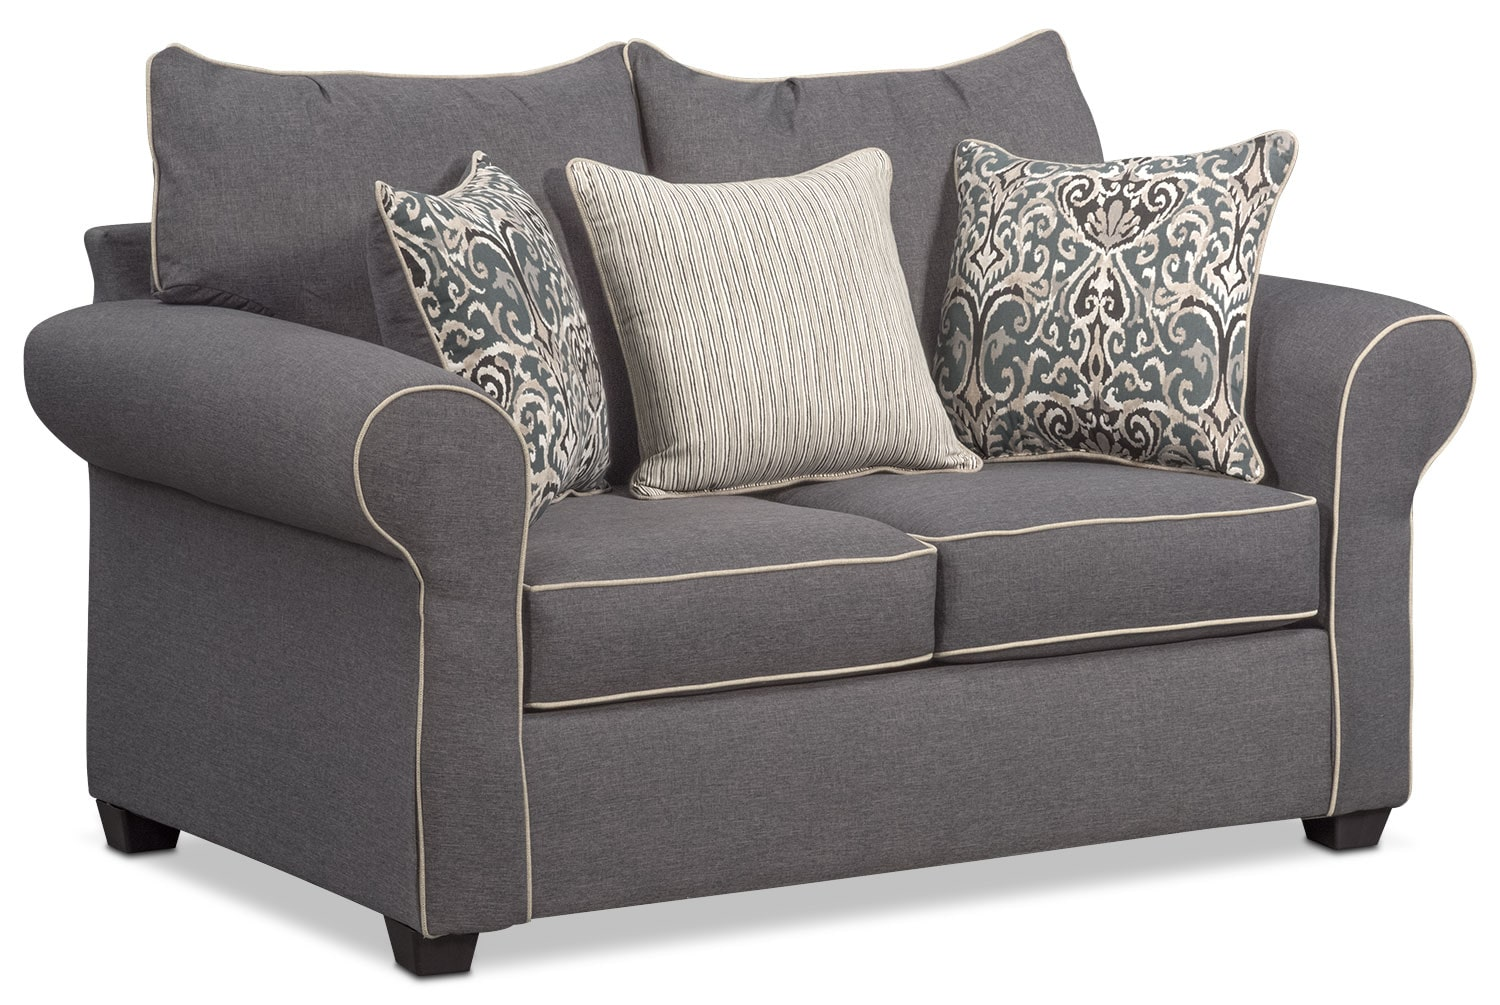 Carla Sofa Loveseat And Accent Chair Set Gray Value City Furniture